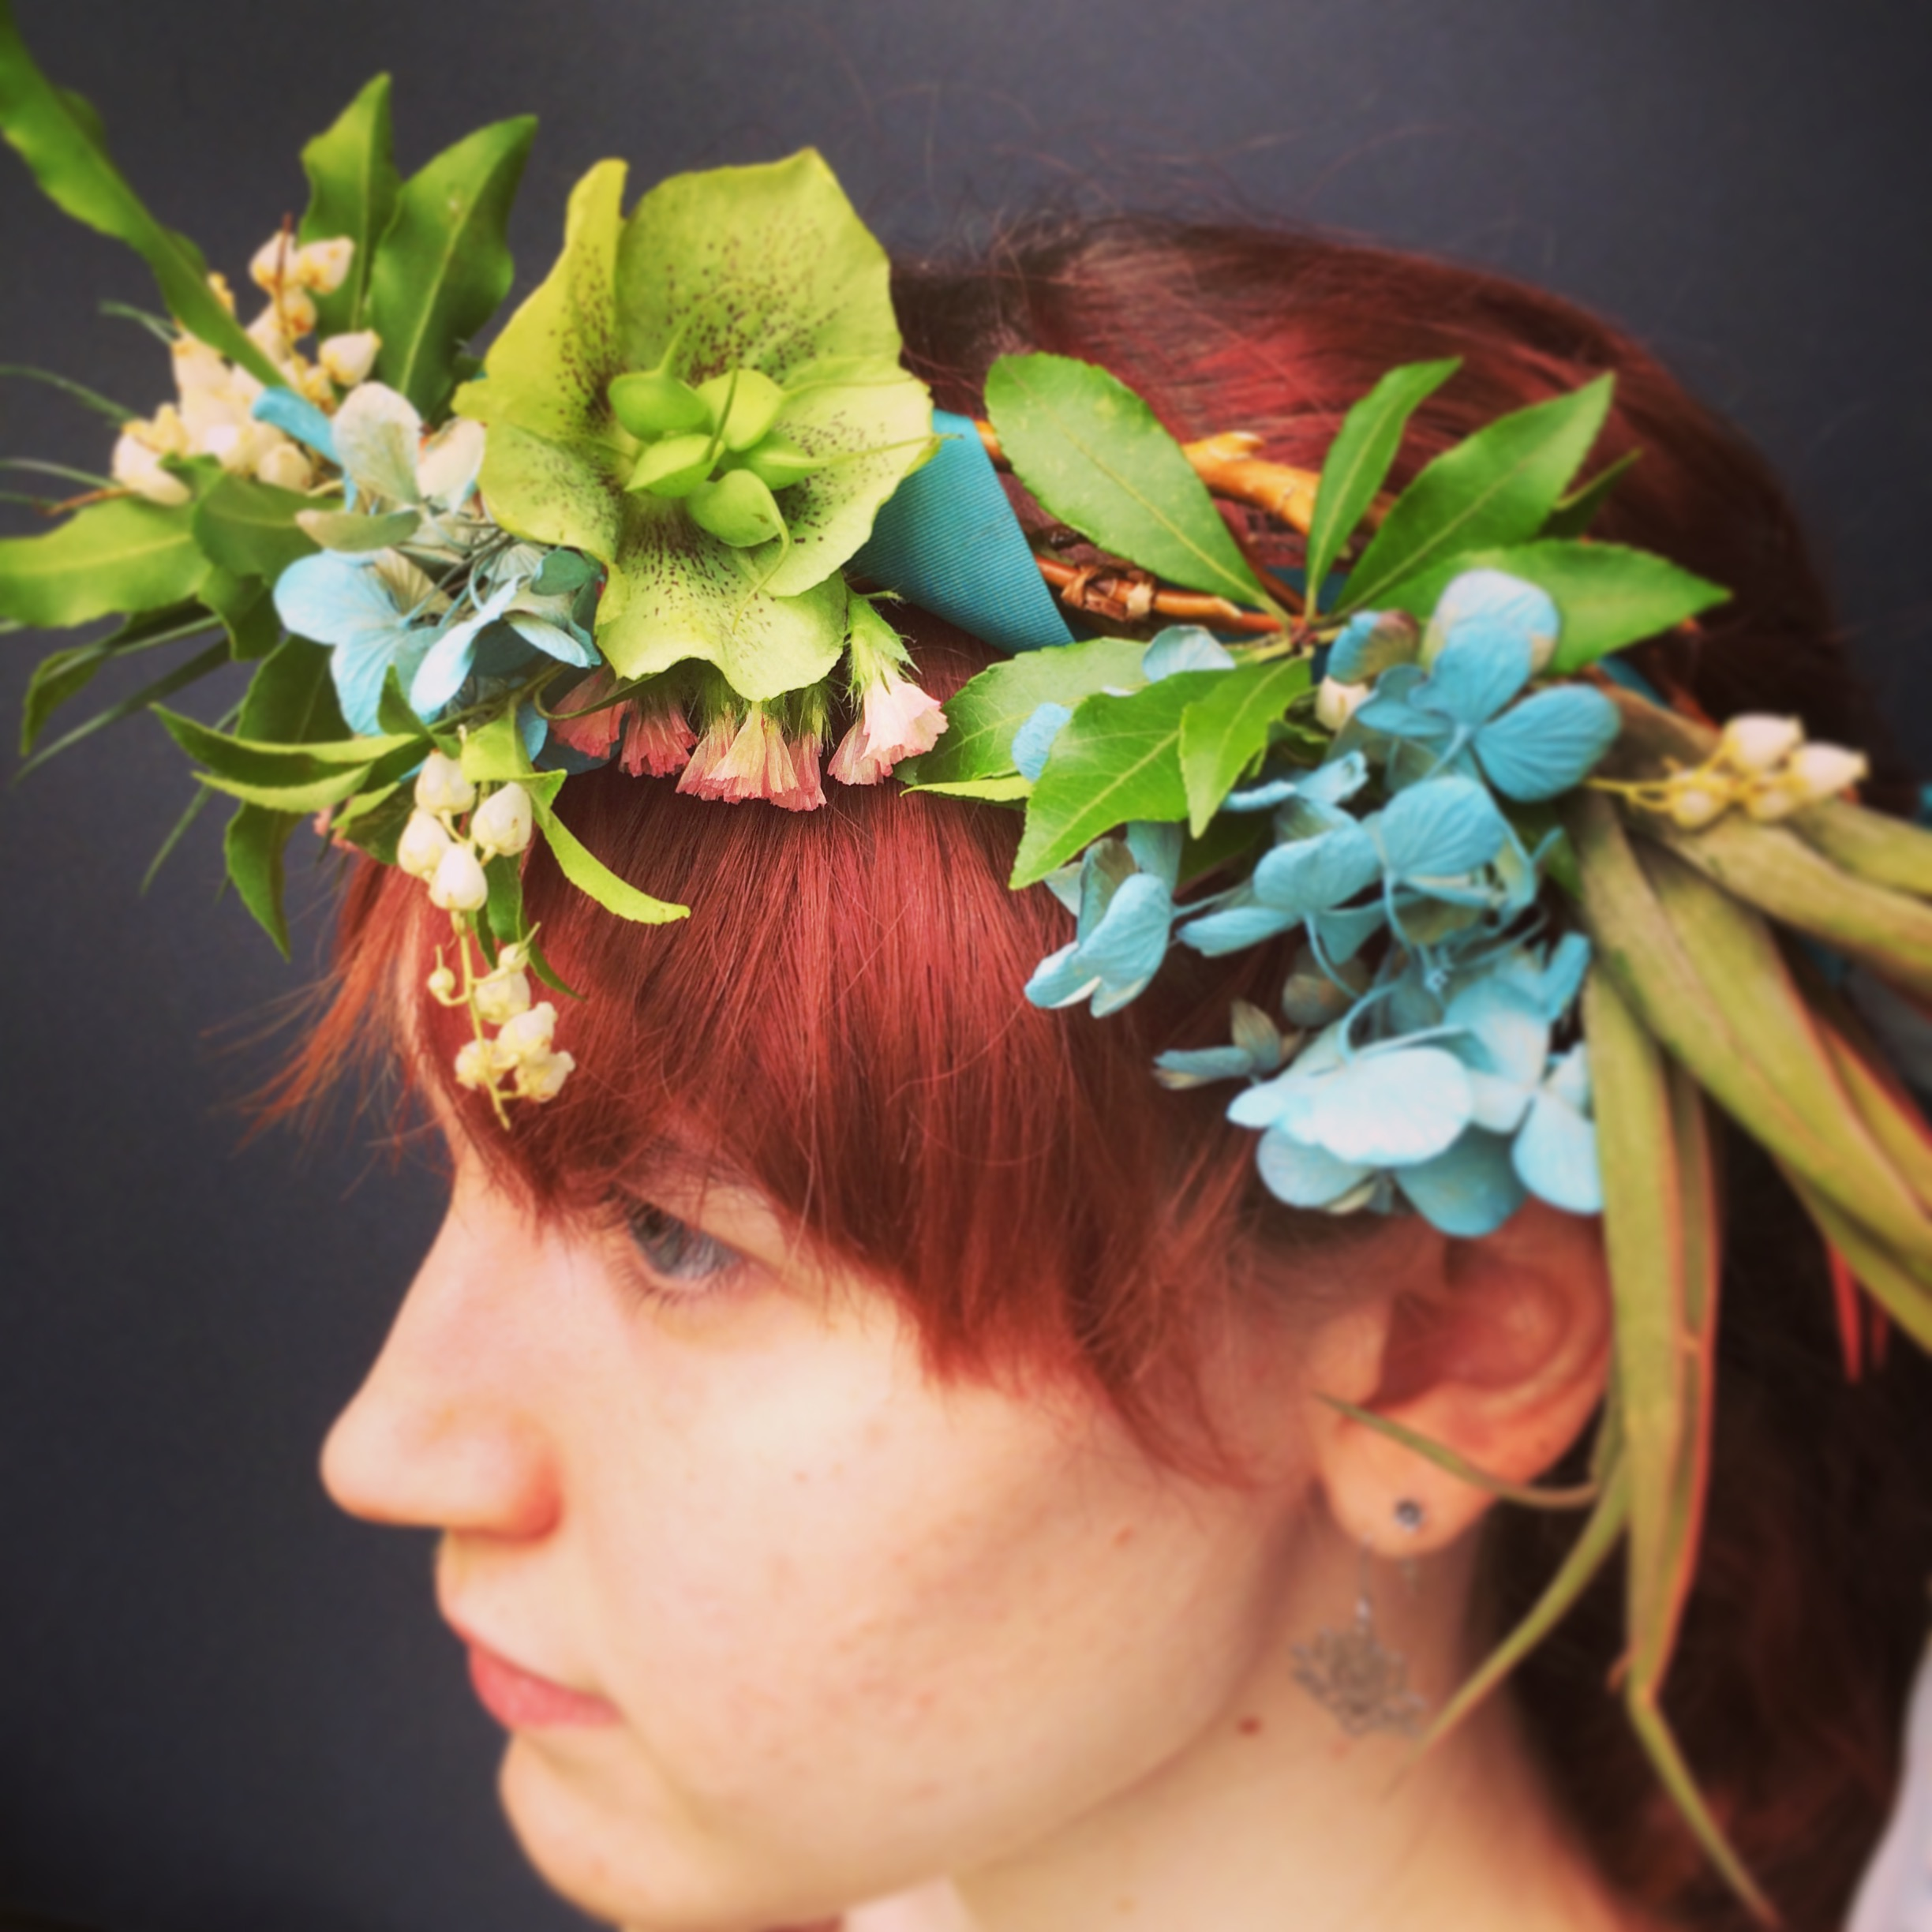 Floral headpiece with early spring flowers